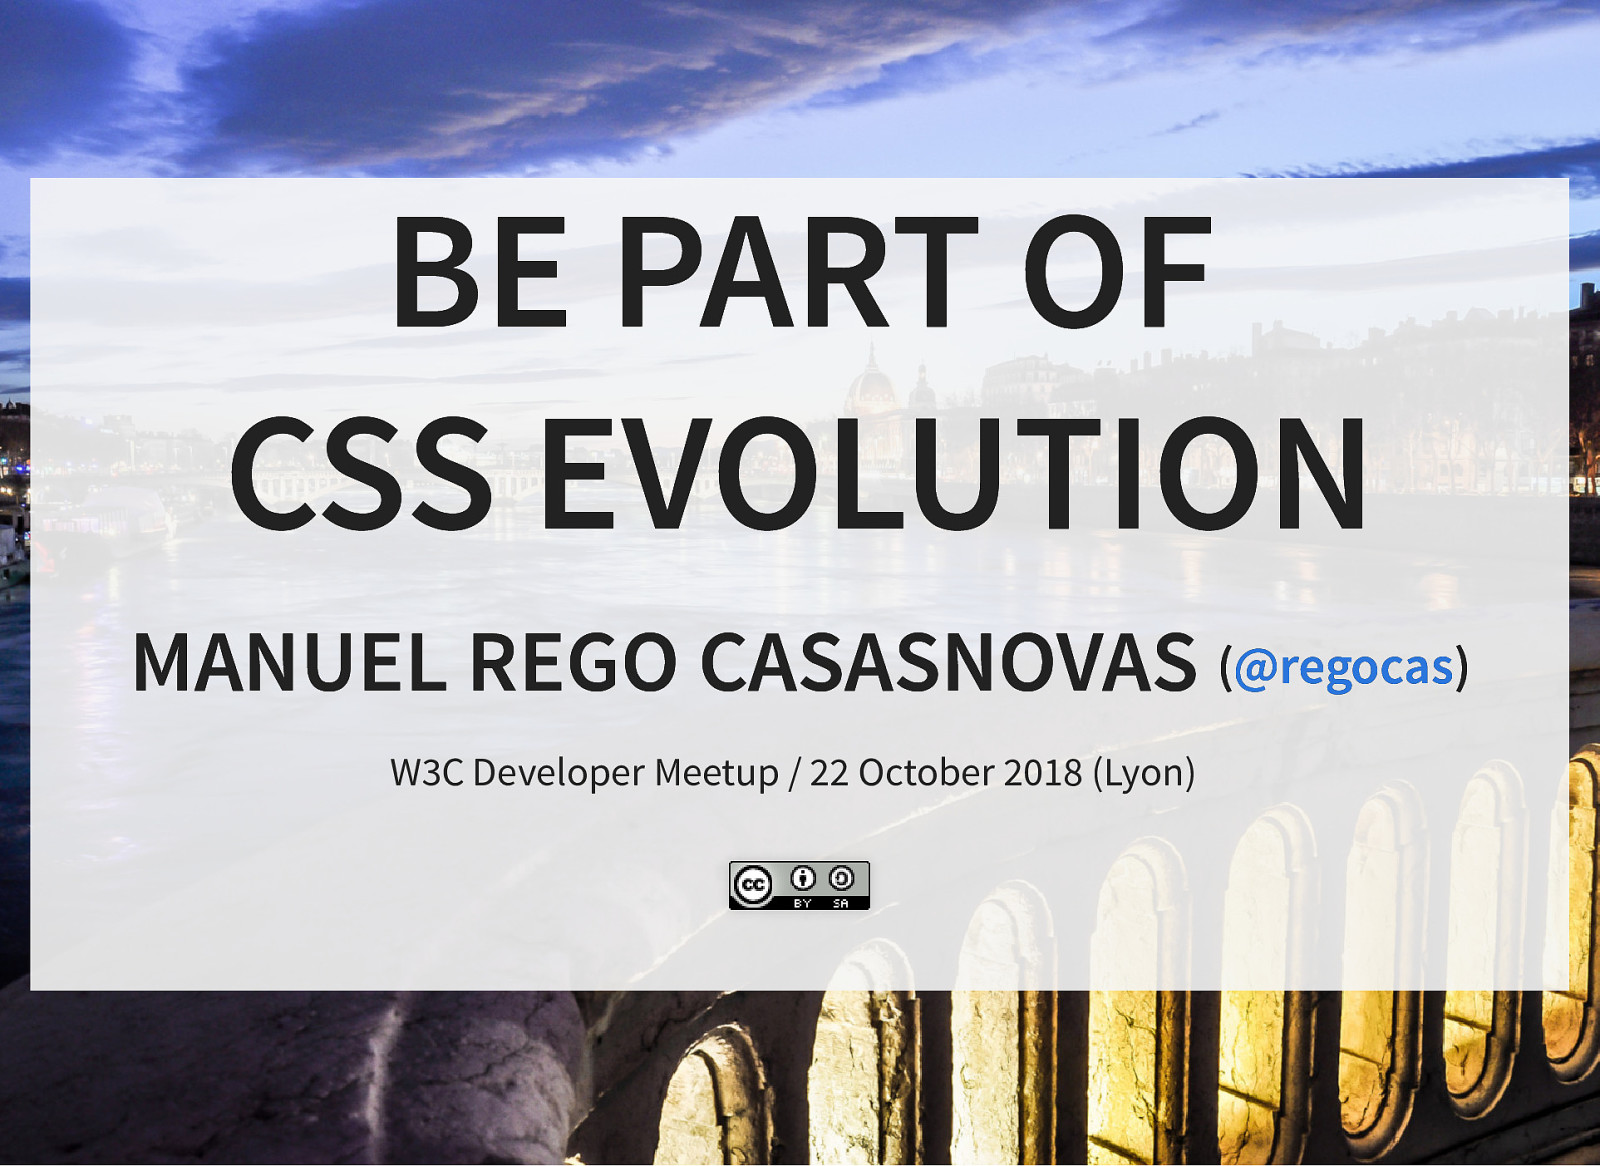 Be part of CSS evolution